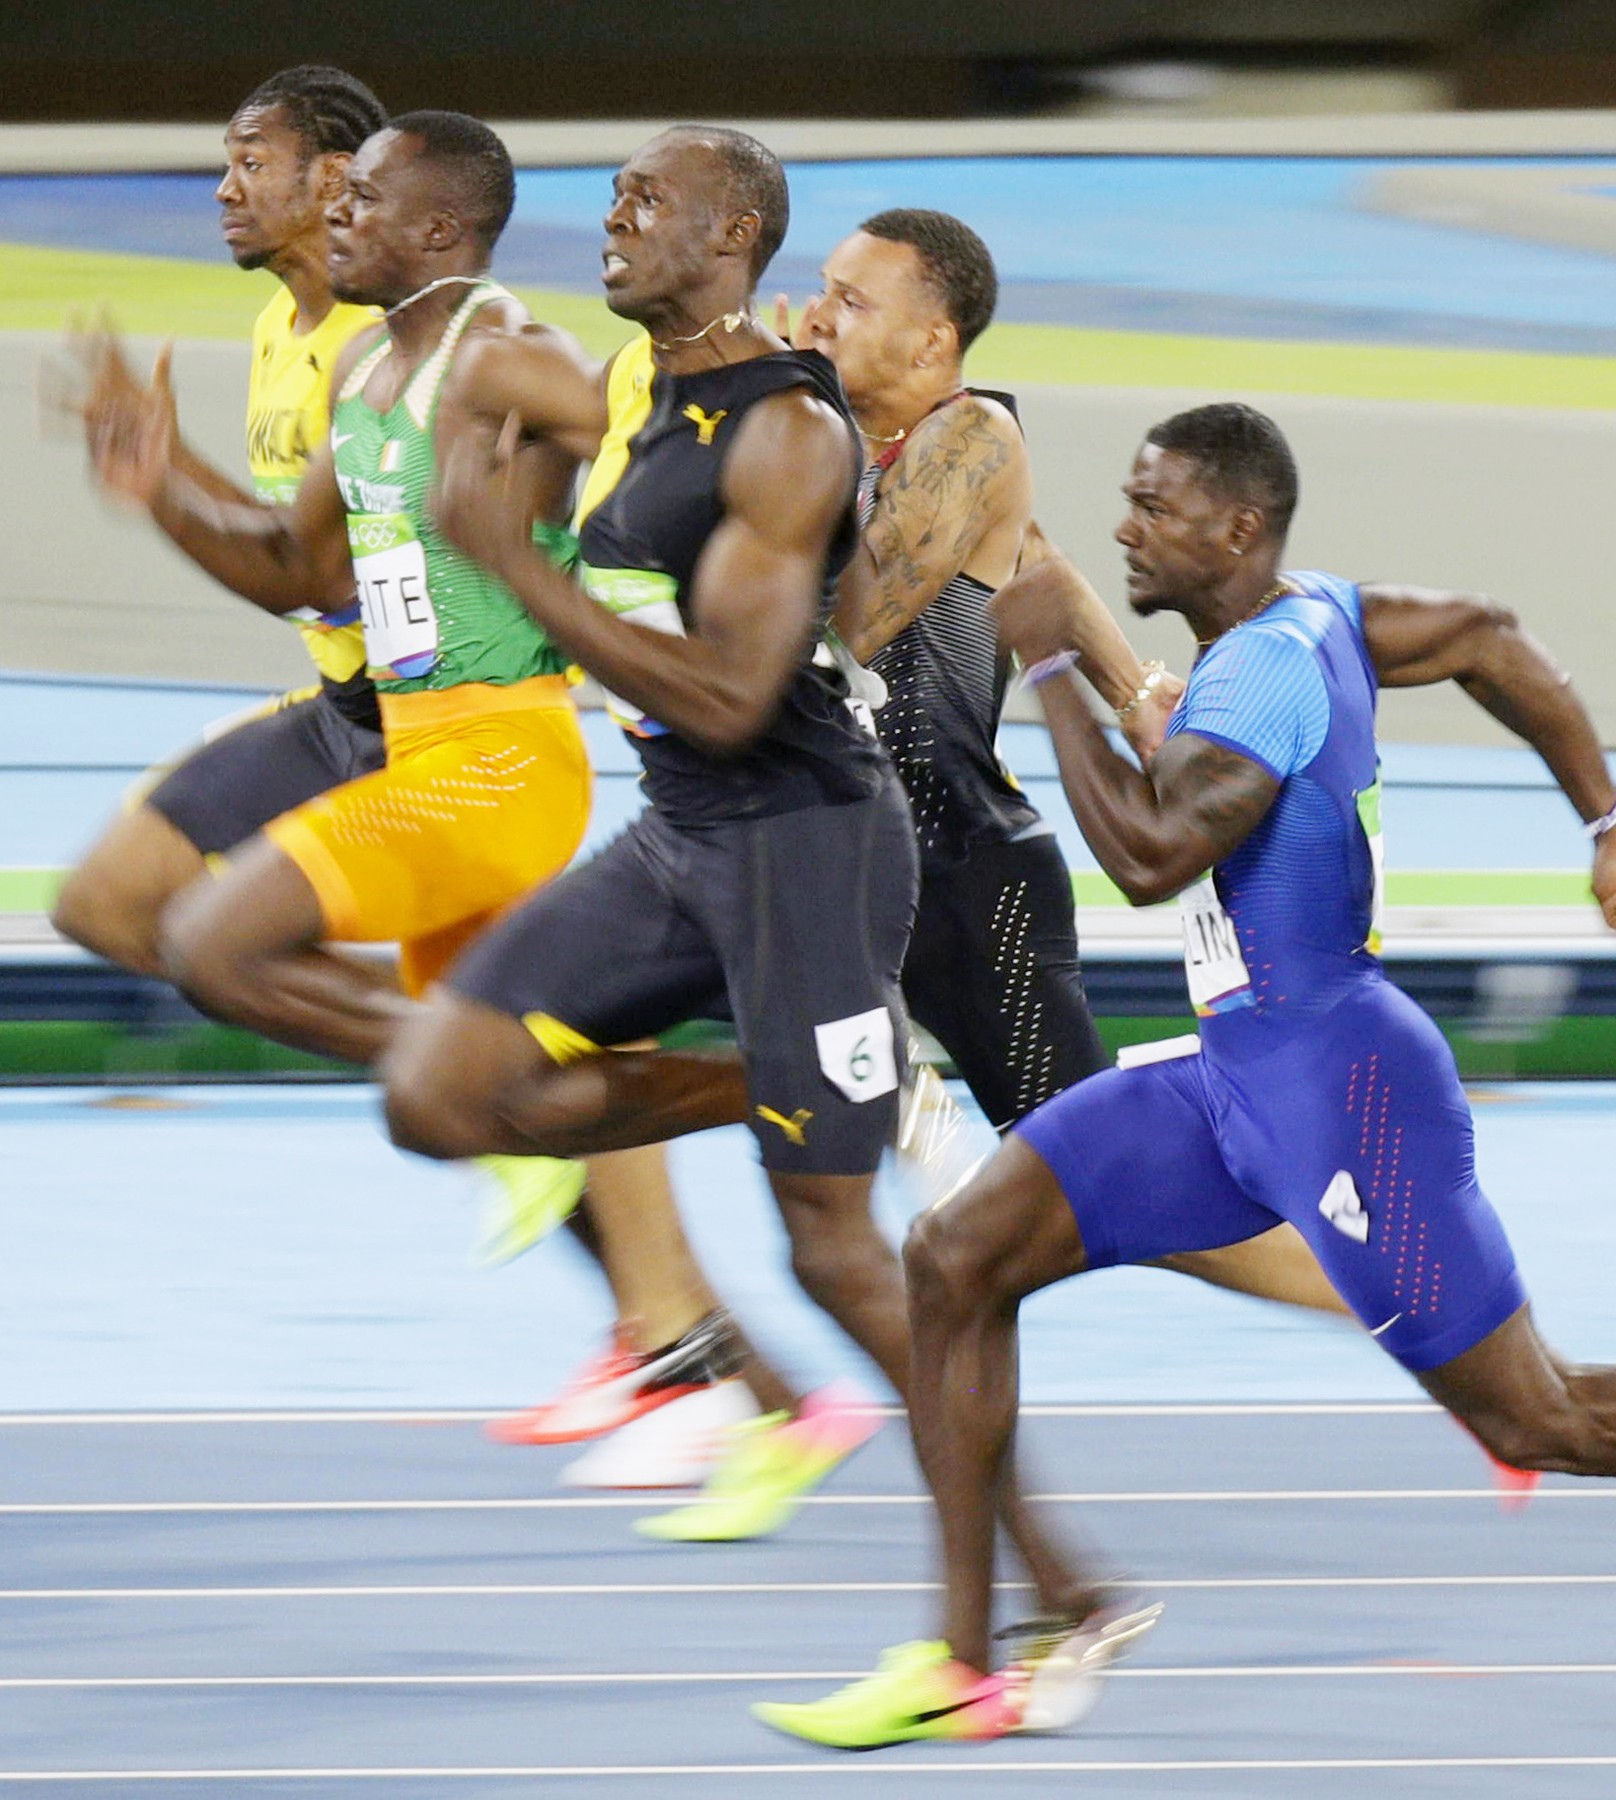 Usain Bolt of Jamaica runs on his way to winning the men's 100-meter final at the Rio de Janeiro Olympics on Aug. 14, 2016, his third consecutive Olympic victory in the event. (Kyodo) ==Kyodo, Image: 296932747, License: Rights-managed, Restrictions: , Model Release: no, Credit line: Profimedia, Newscom